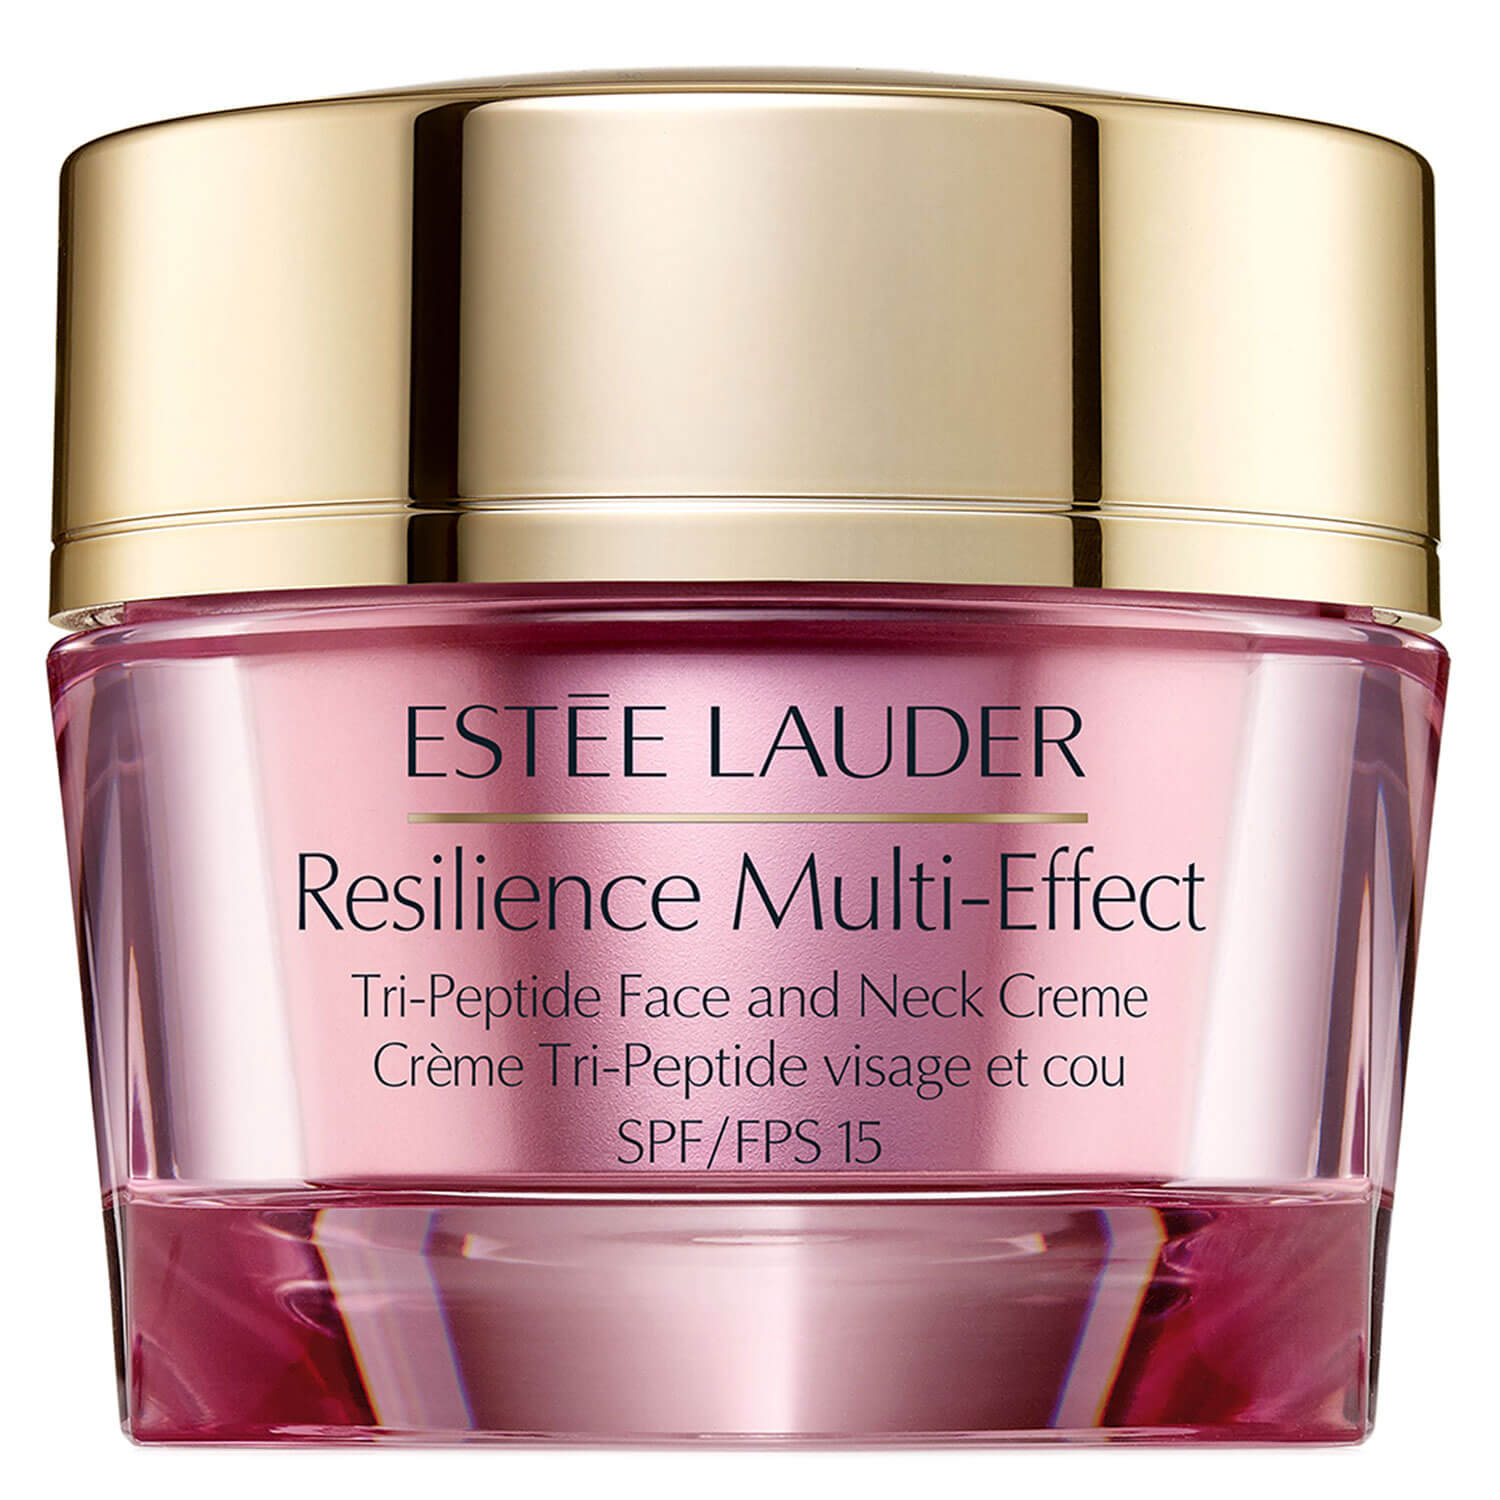 Resilience Multi-Effect - Tri-Peptide Face and Neck Creme N/C SPF15